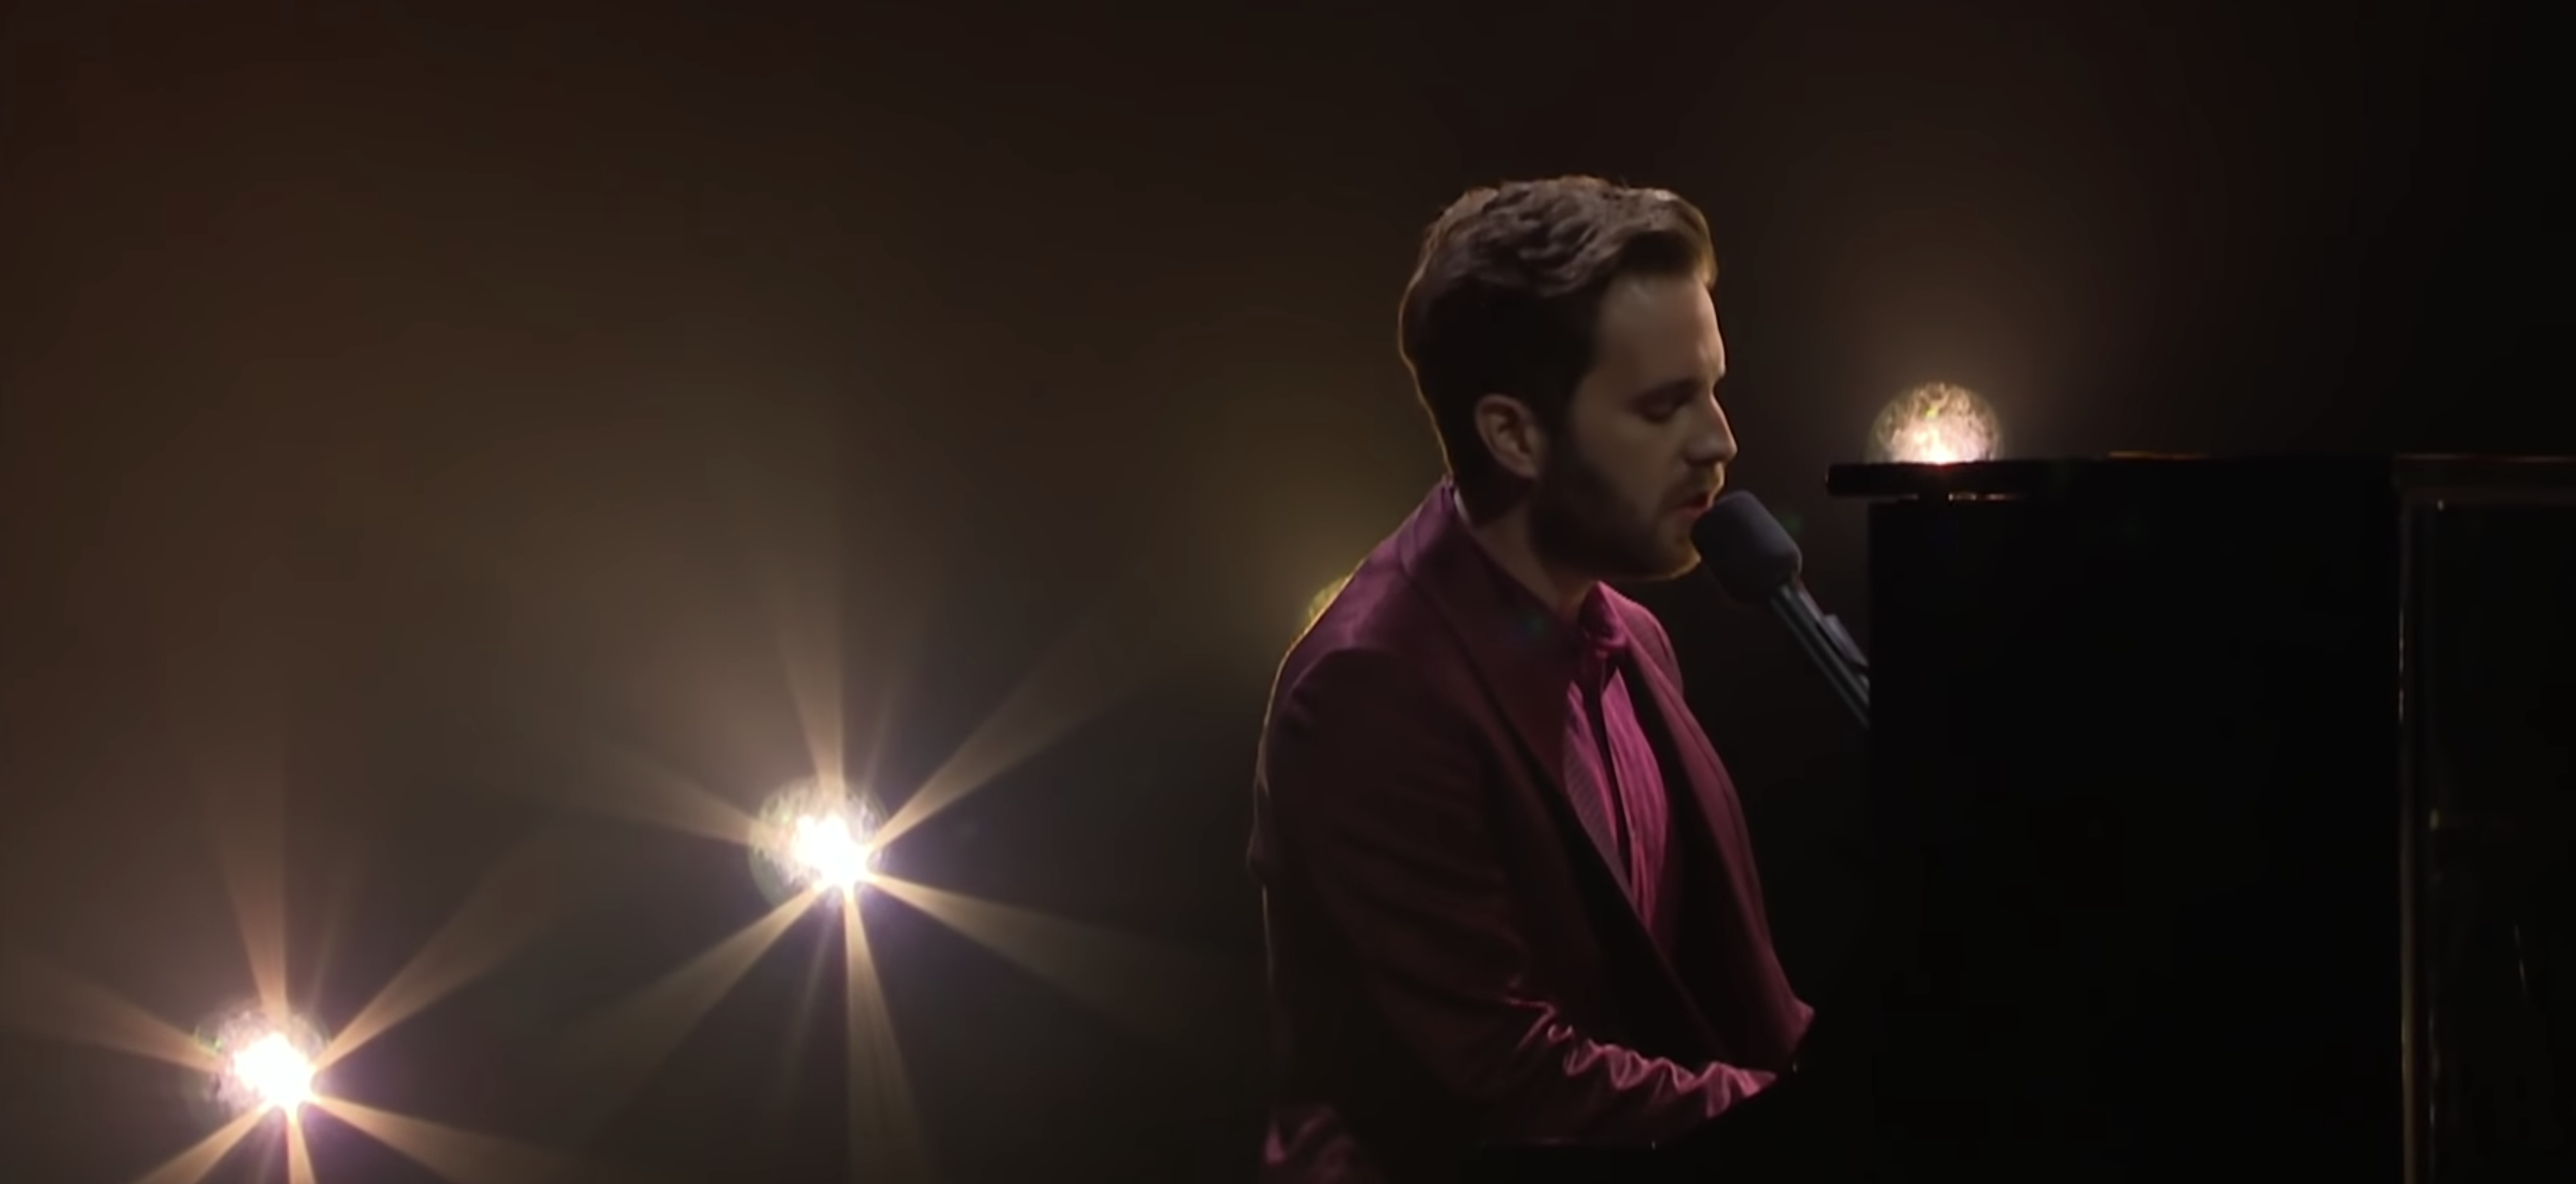 Watch Ben Platt Perform 'Run Away' on The Late Late Show With James Corden